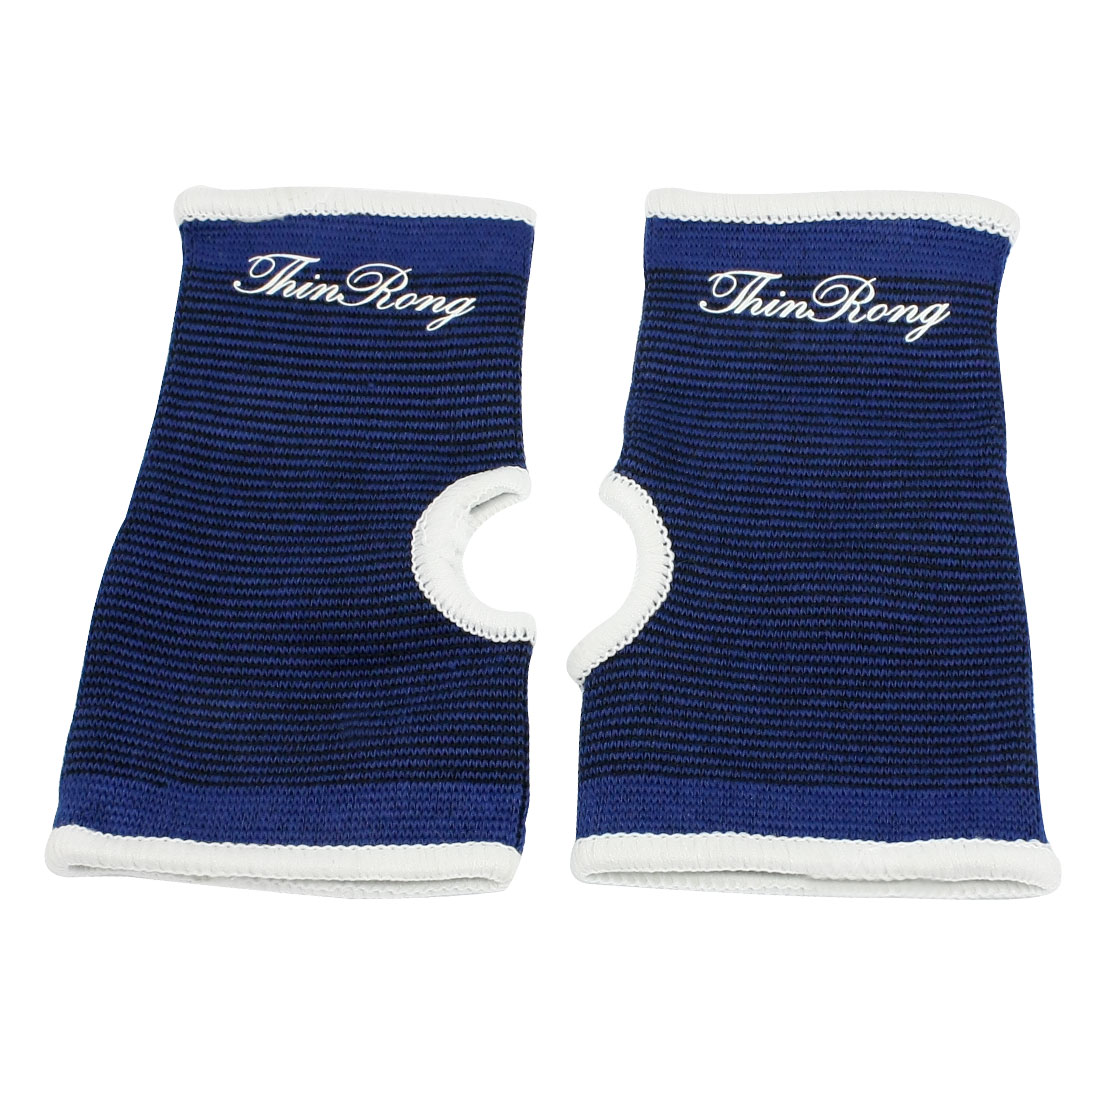 Blue Black White Sports Wear Stretchy Sleeve Palm Support Brace Pair